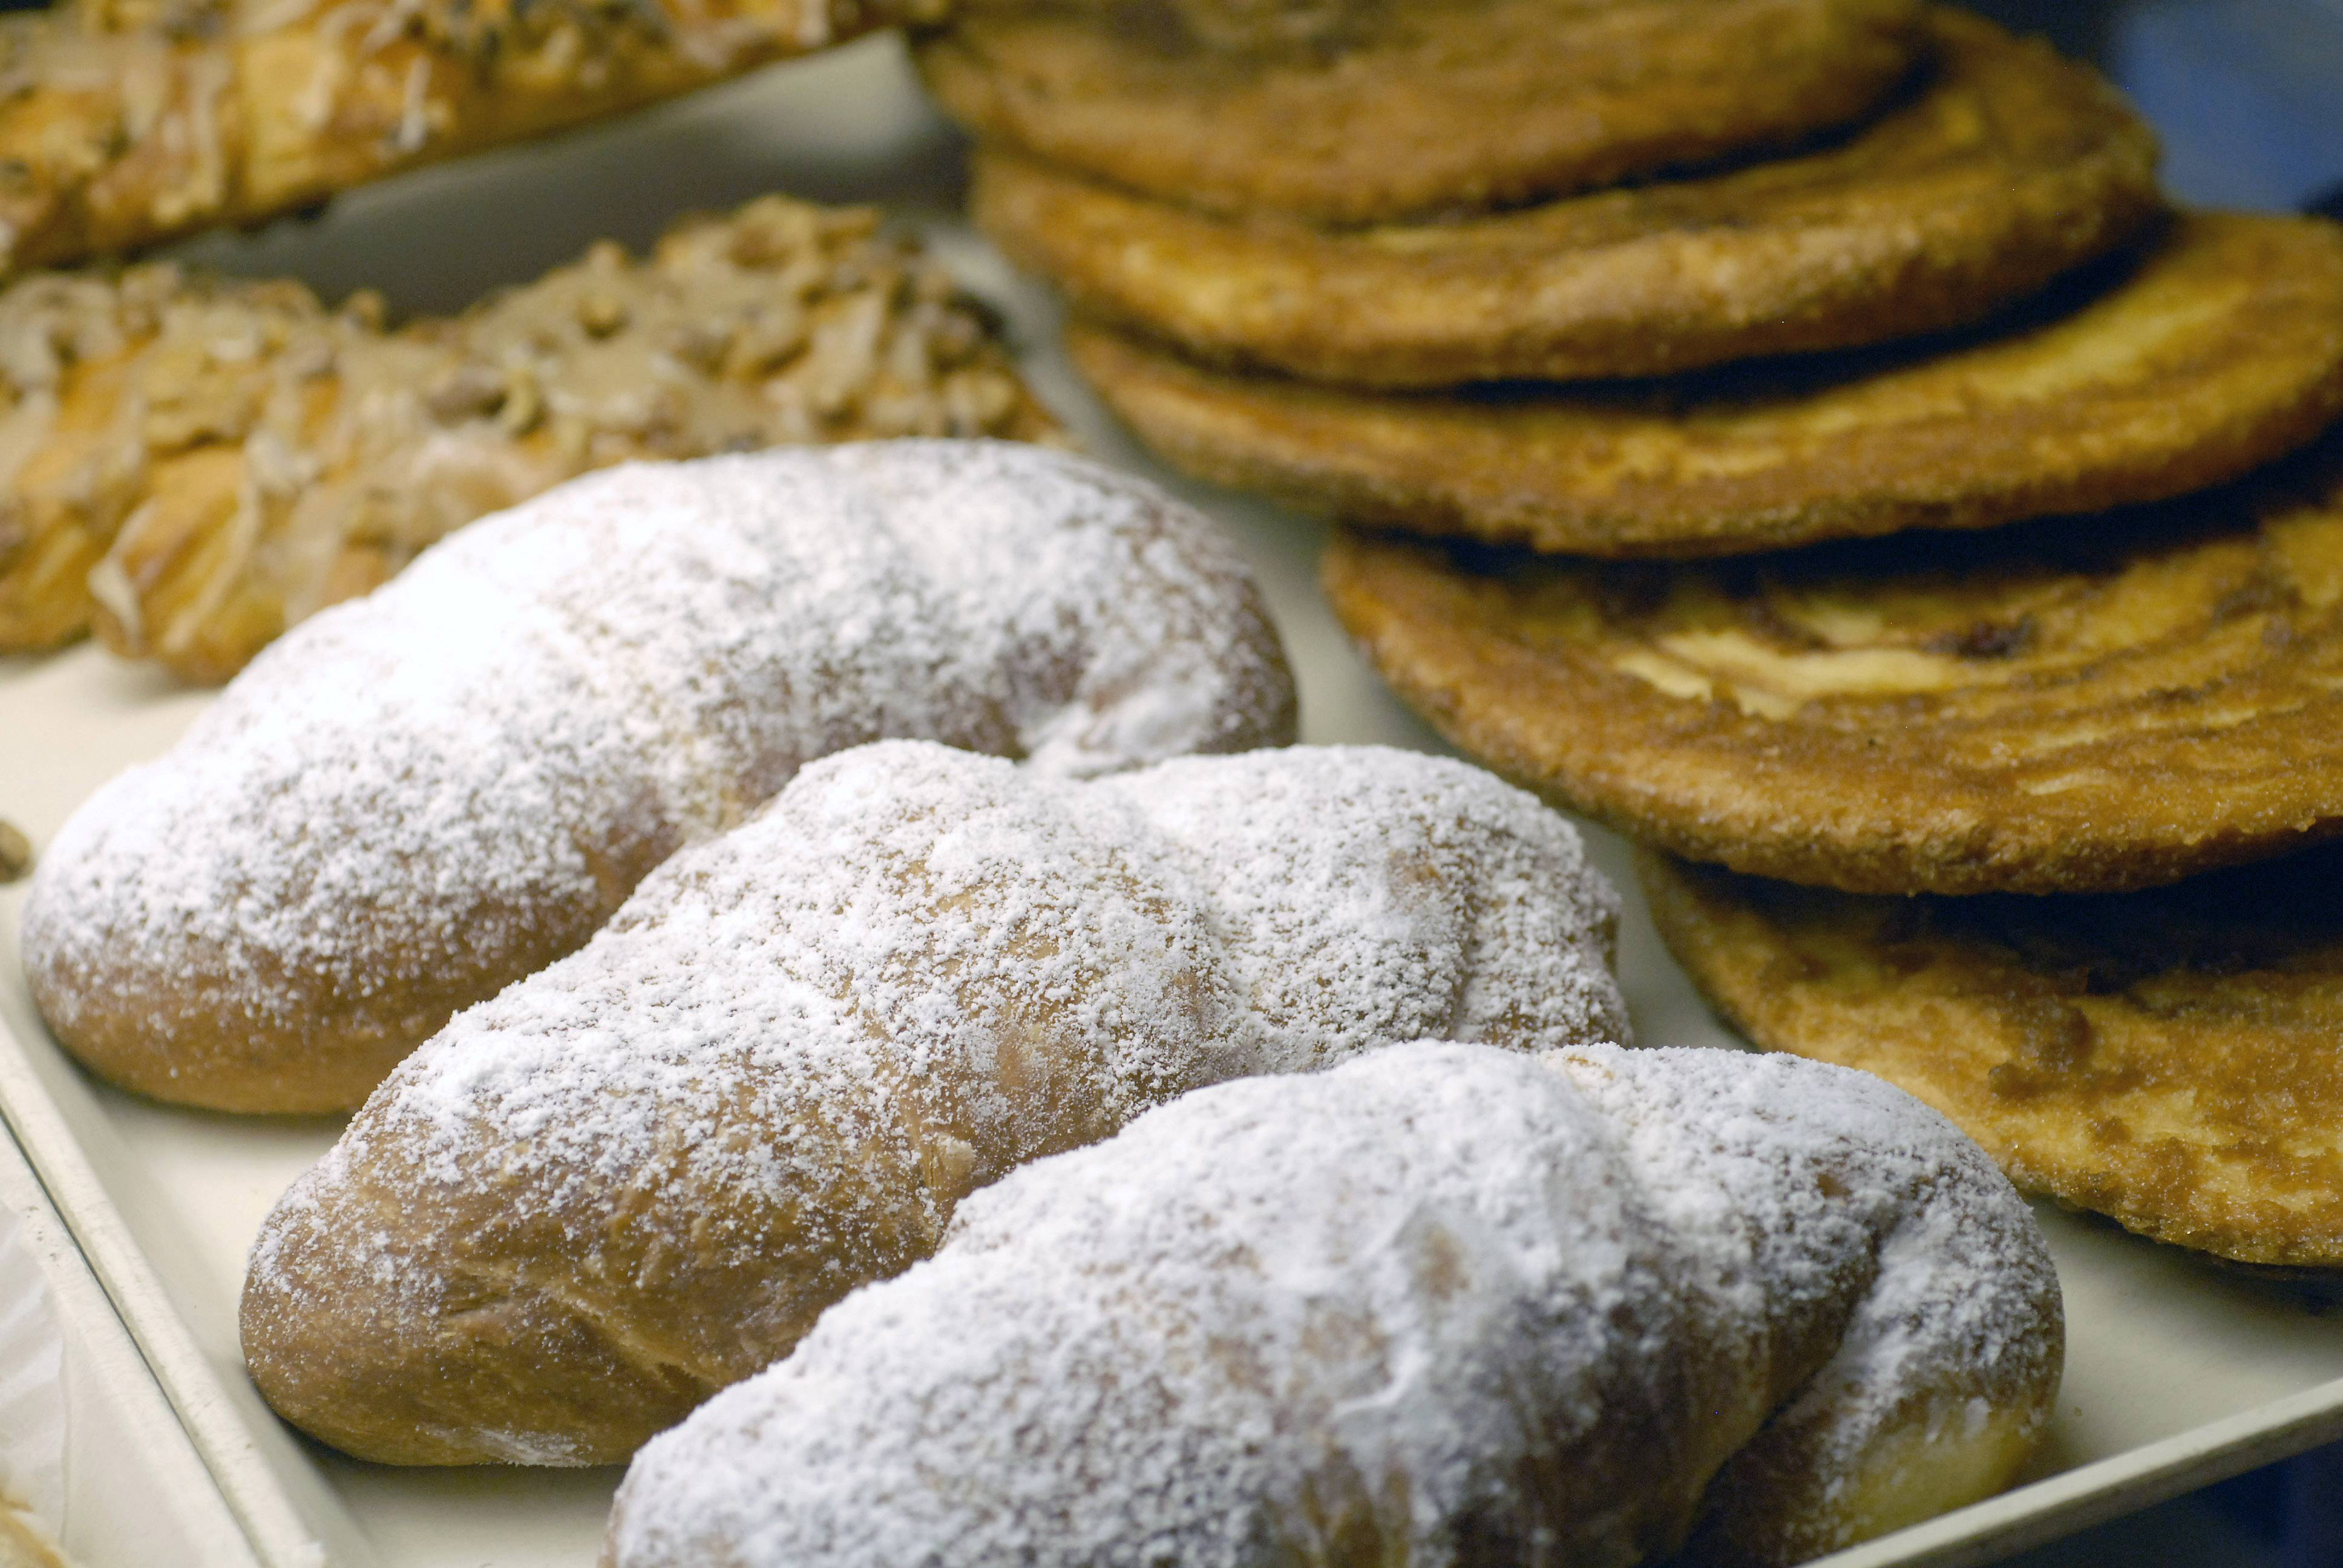 Cookies and doughnuts top the list of Americans' top sources of calories.